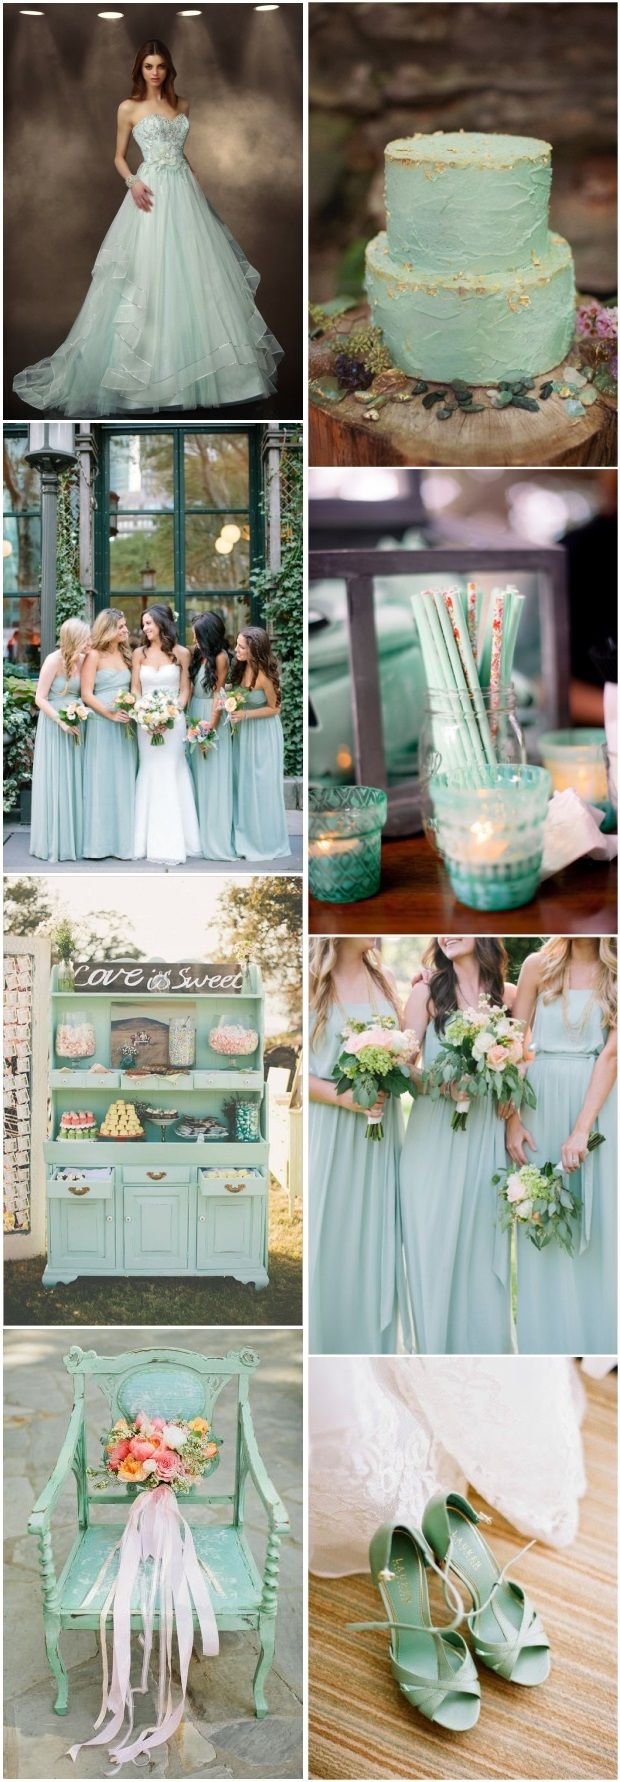 50 Mint Wedding Color Ideas You will Love   http://www.deerpearlflowers.com/mint-wedding-color-ideas/